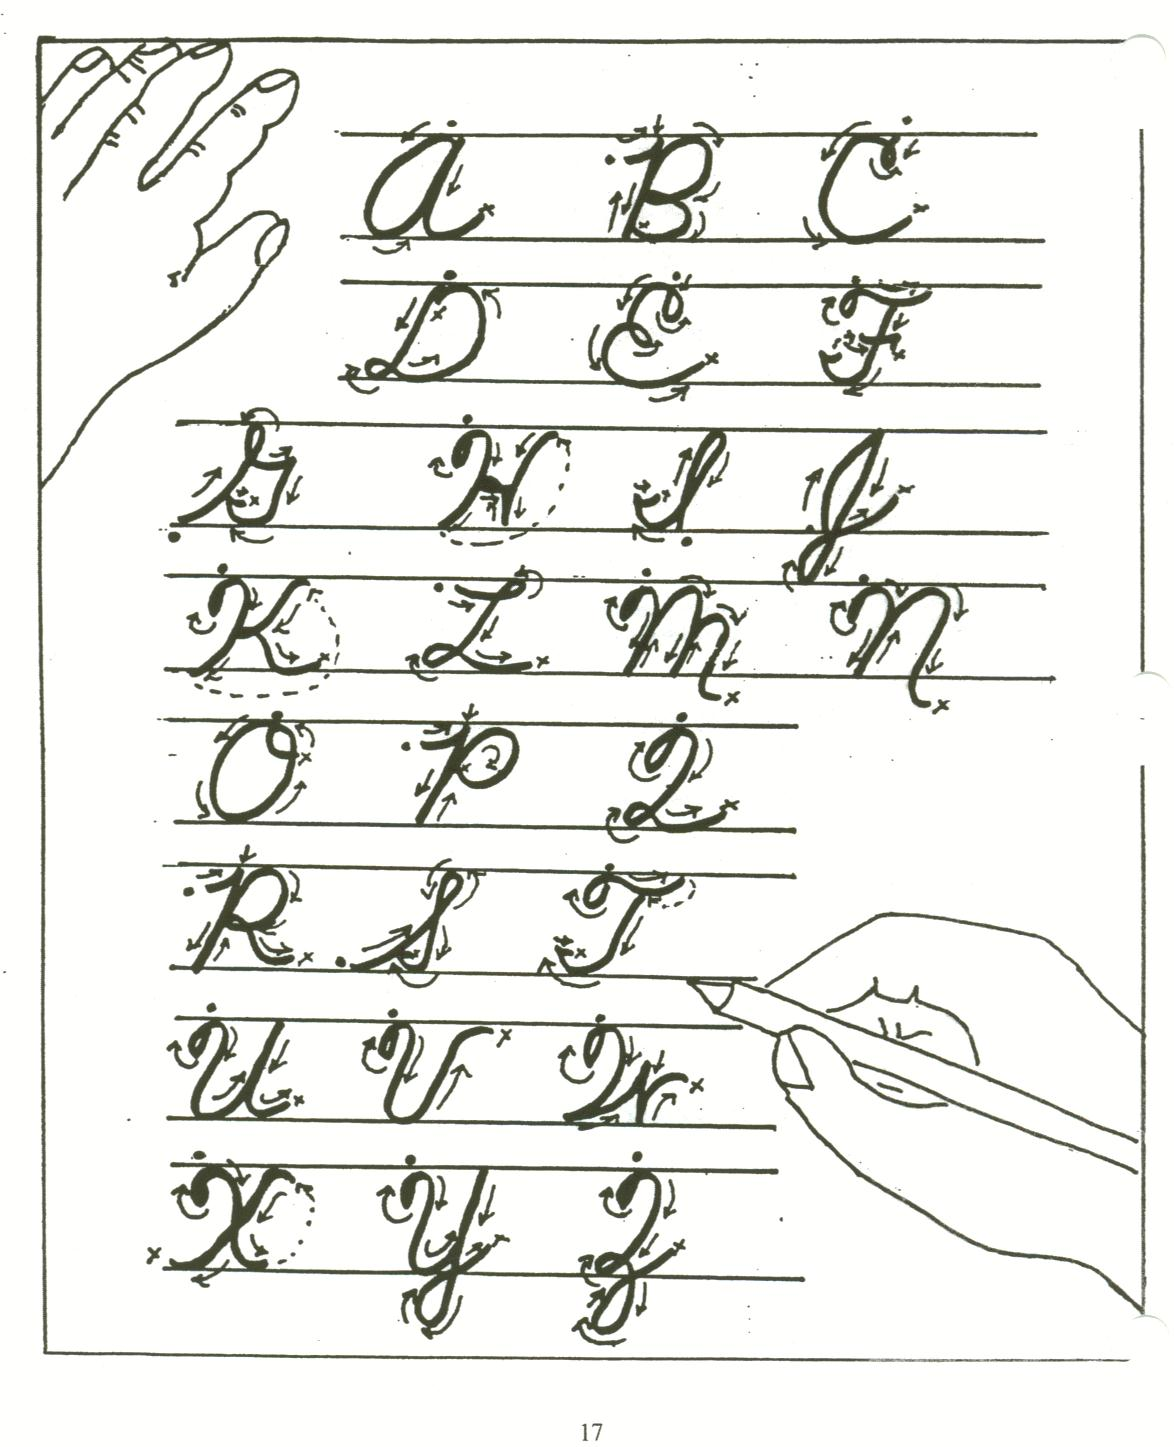 Free handwriting worksheets: Handwriting alphabet practice worksheets